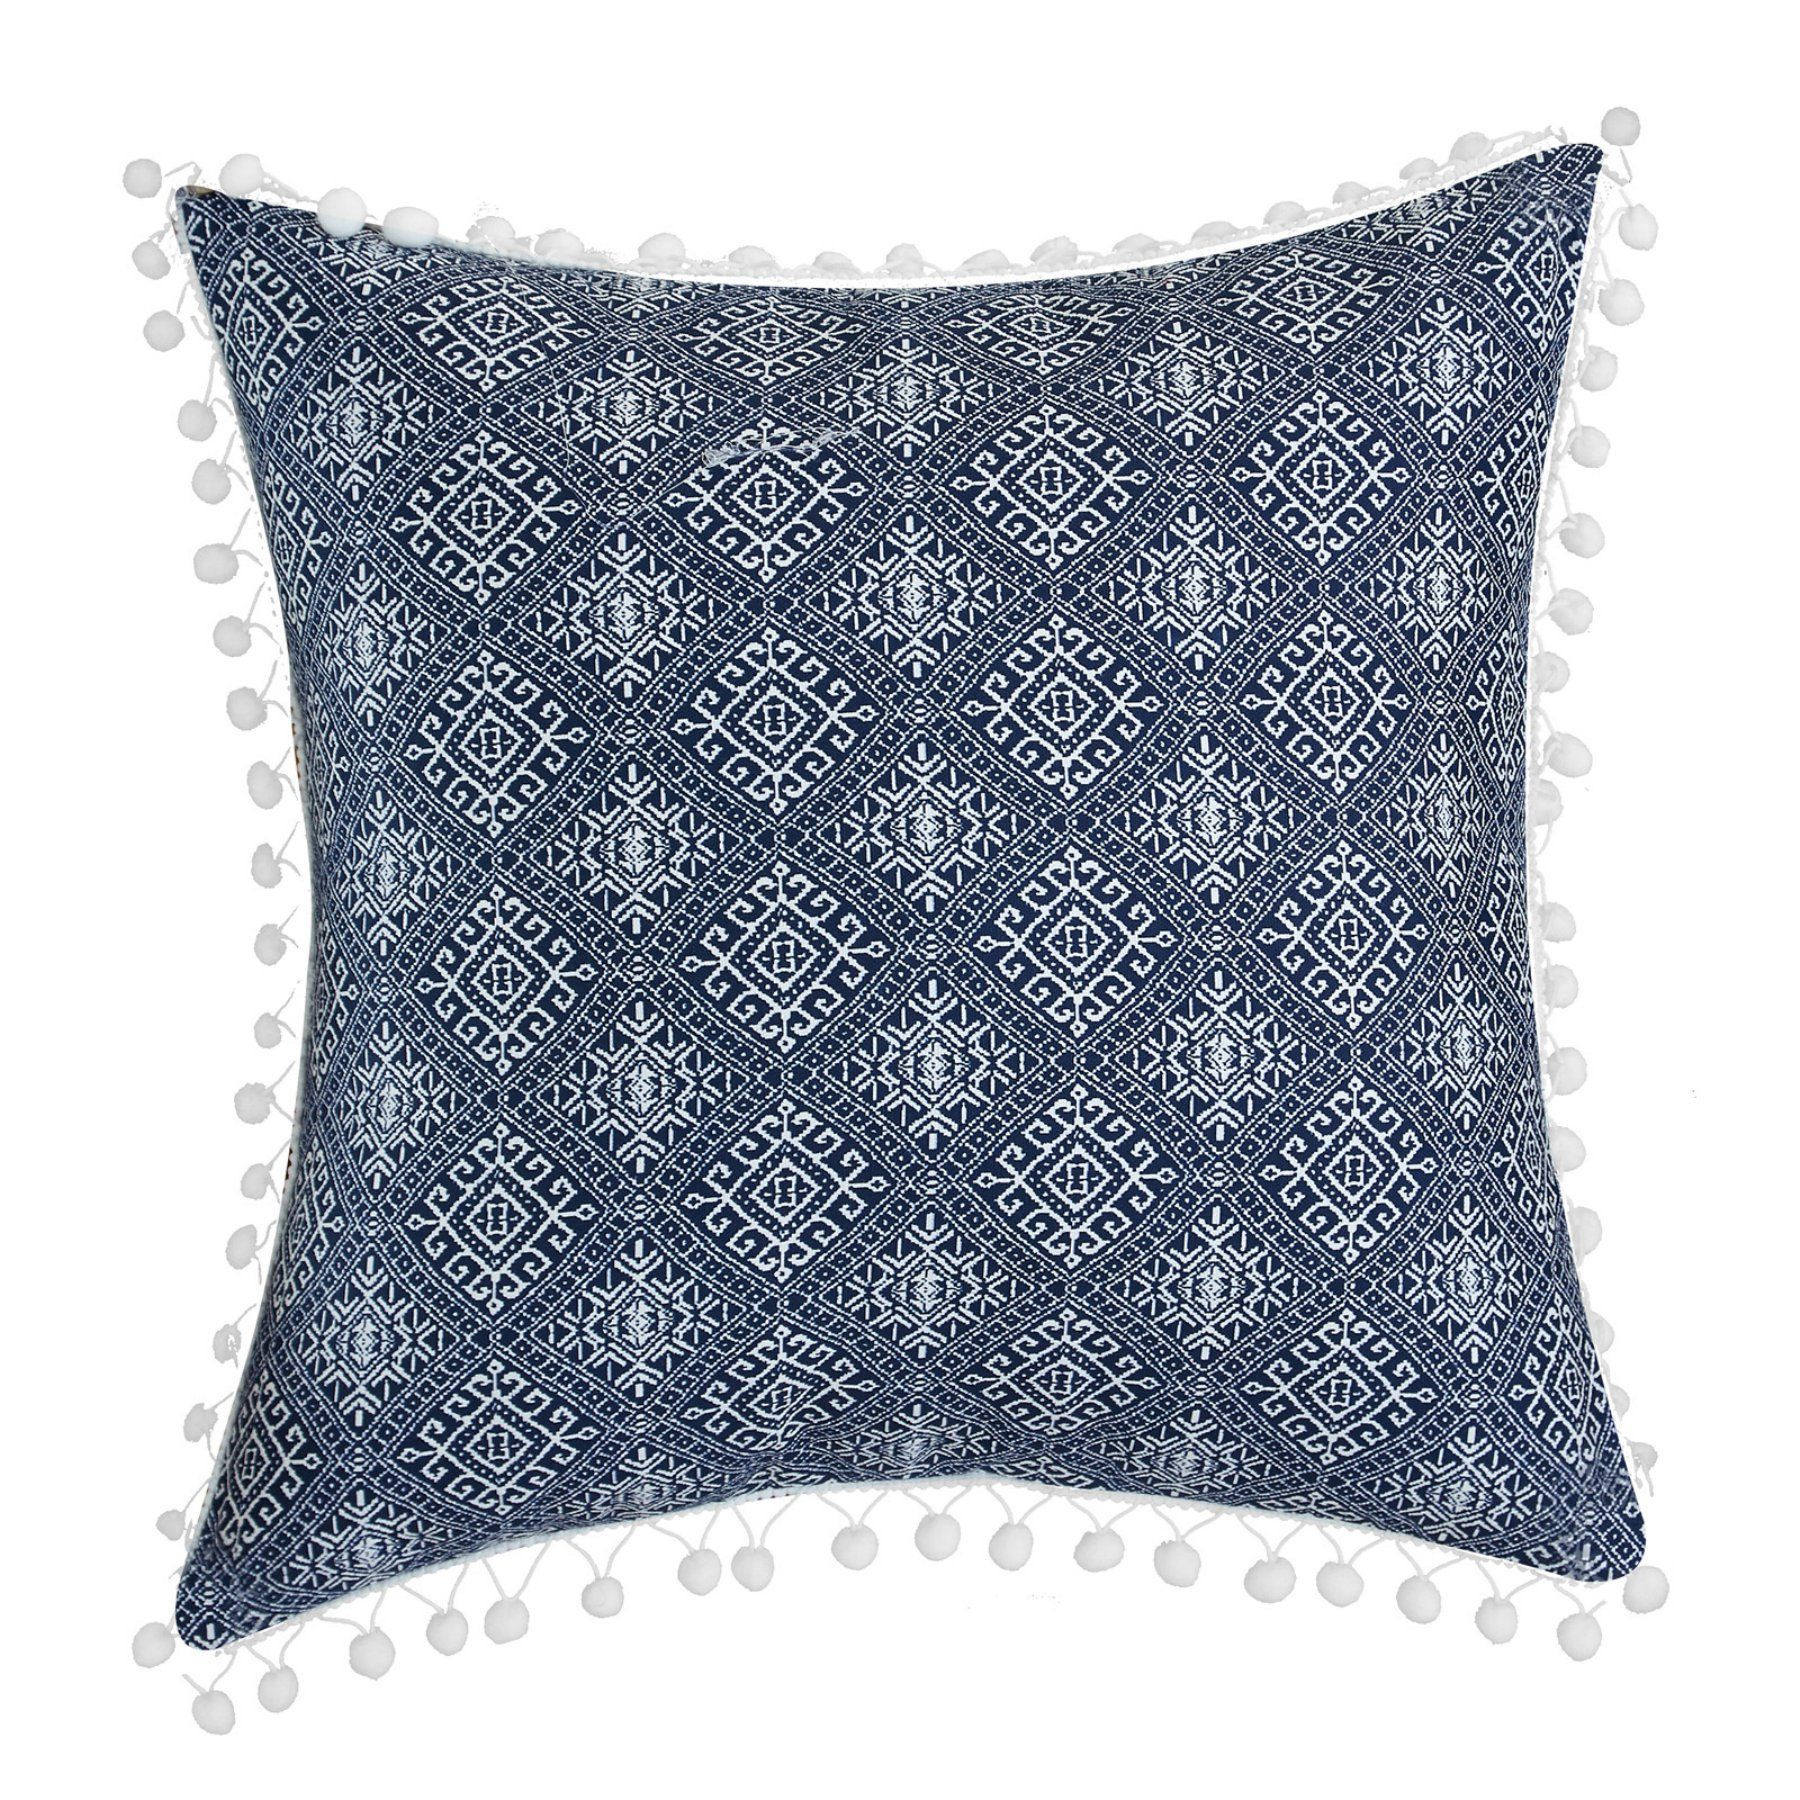 Lux Bed Pearce Garden Aztec Kilim Embroidered Decorative Pillow With Pom Pom Trim In 2019 Products Throw Pillows White Decorative Pillows Navy Pillows